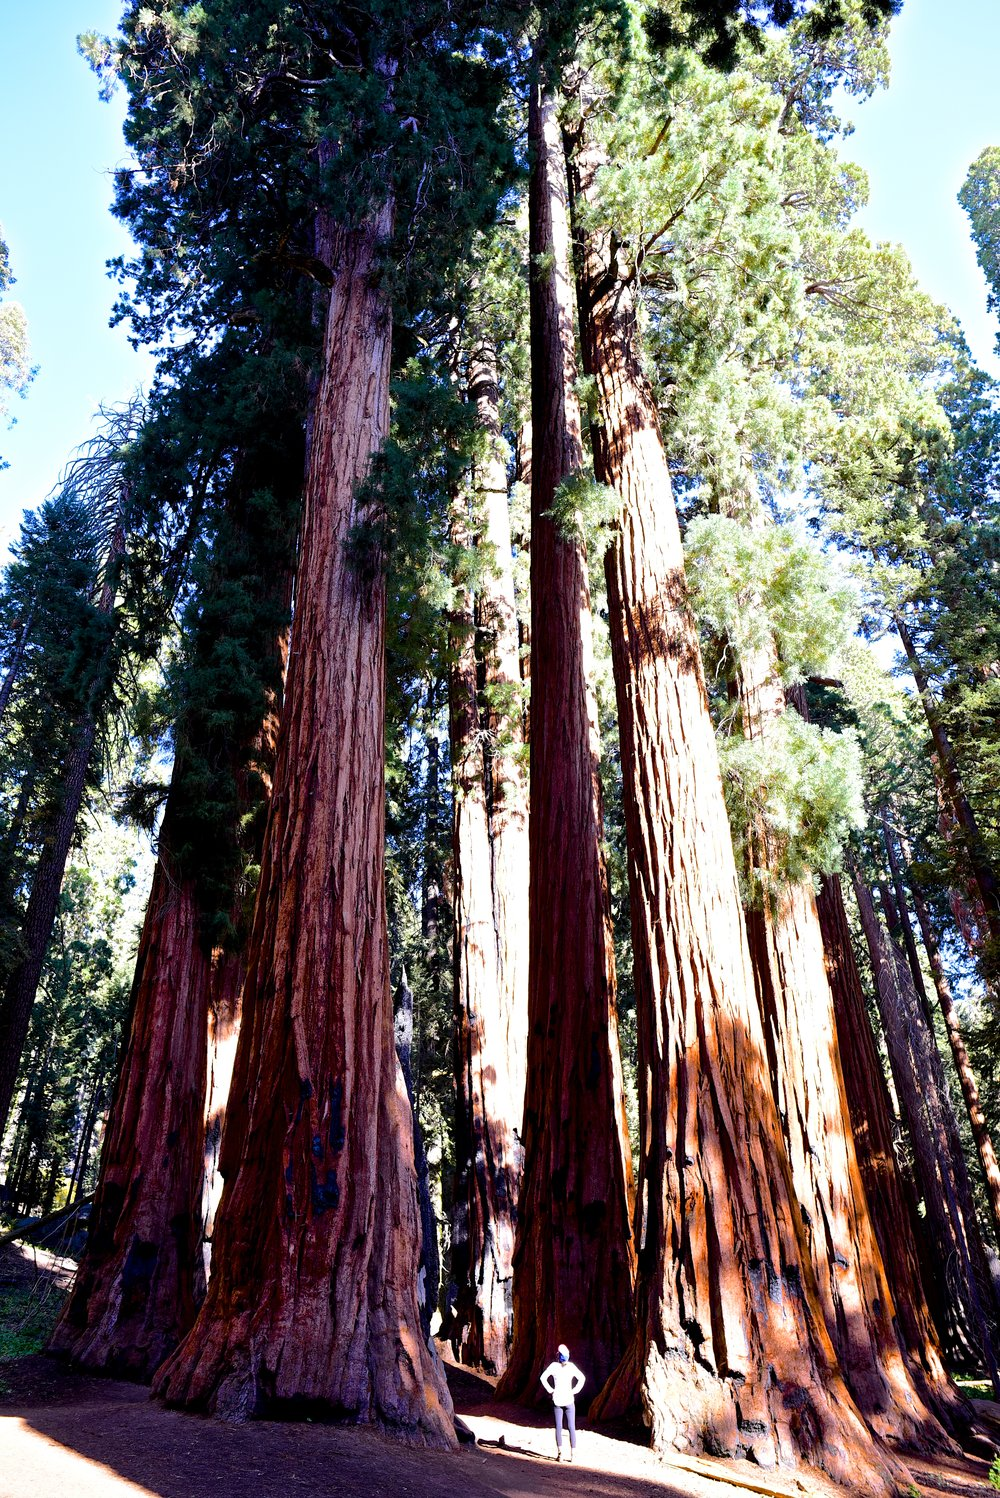 Walking among the Giant Forest in Sequoia National Park